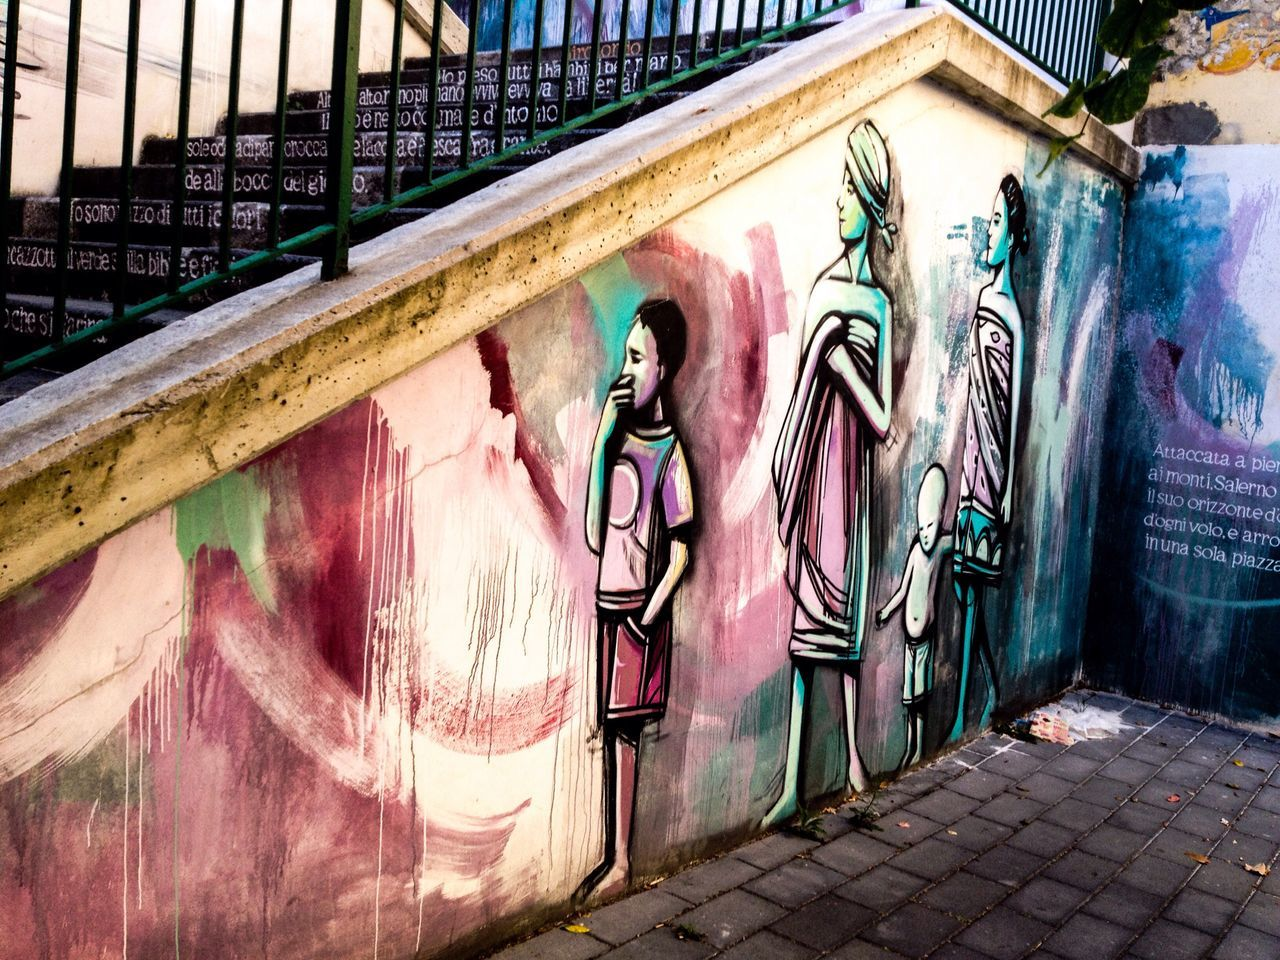 graffiti, art and craft, creativity, architecture, built structure, human representation, street art, building exterior, outdoors, day, no people, multi colored